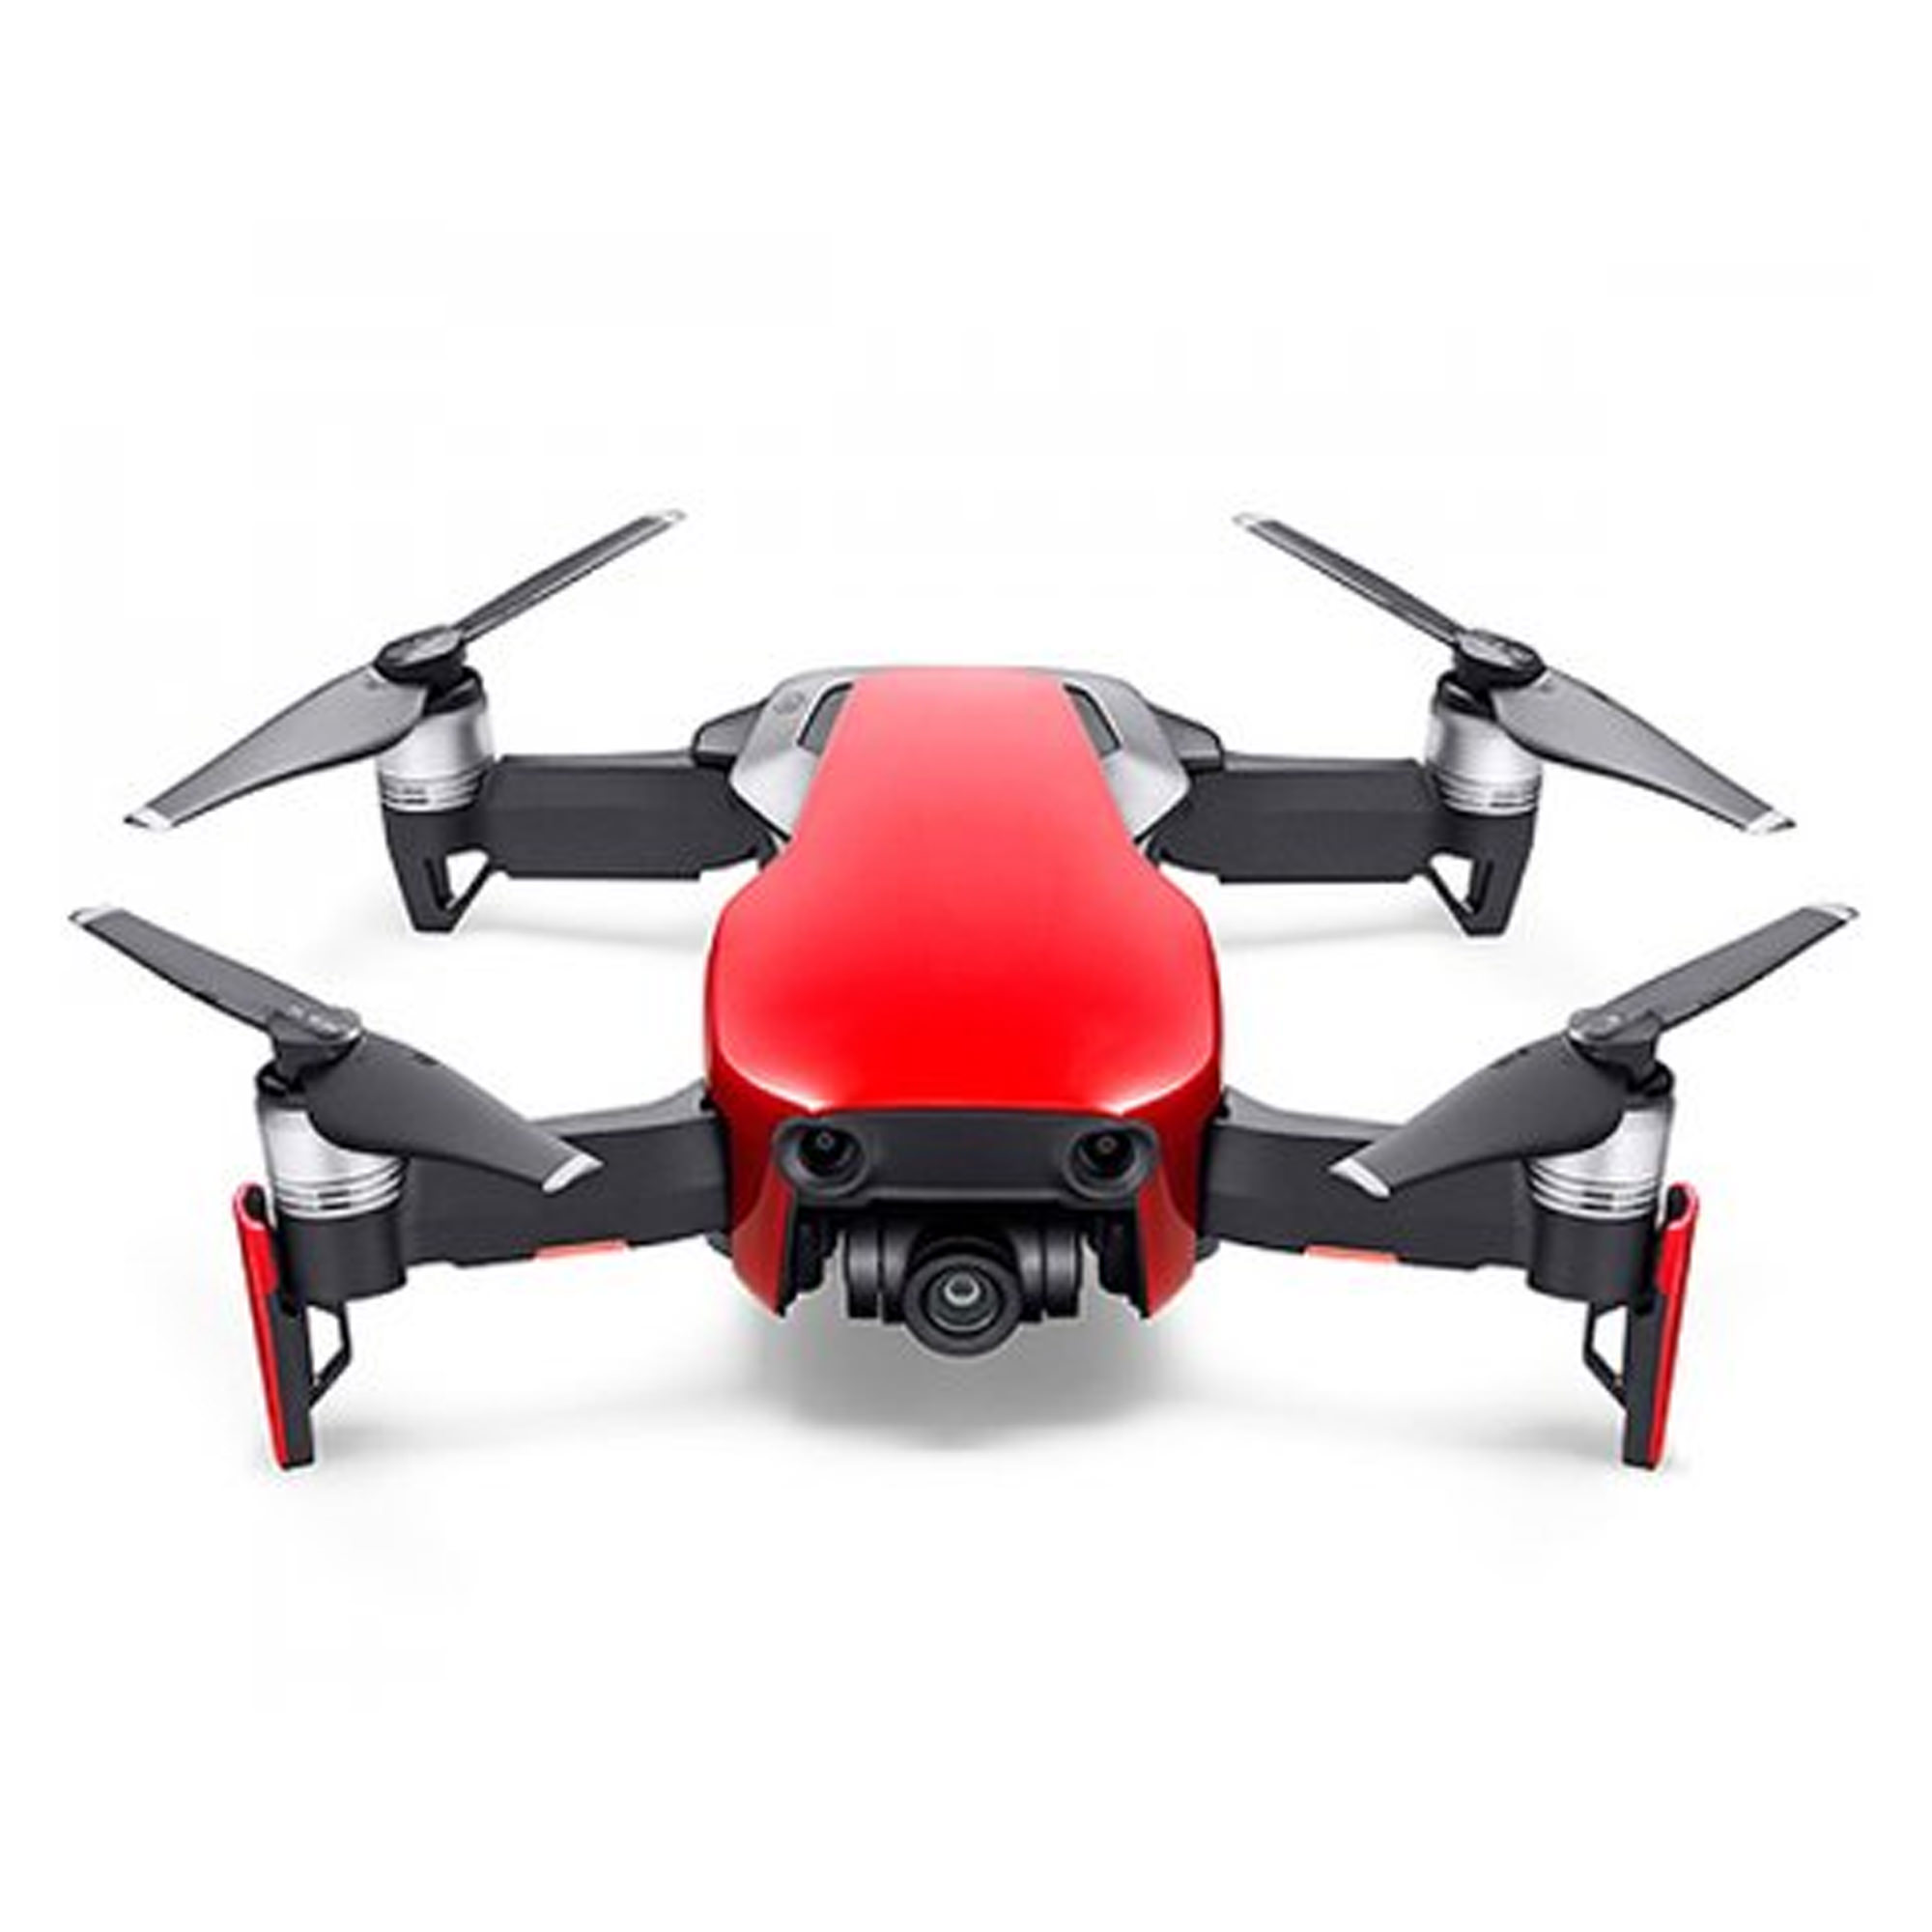 DJI Mavic Air Drone Flame Red (Buy One Mavic Air Get Battery Free) by DJI